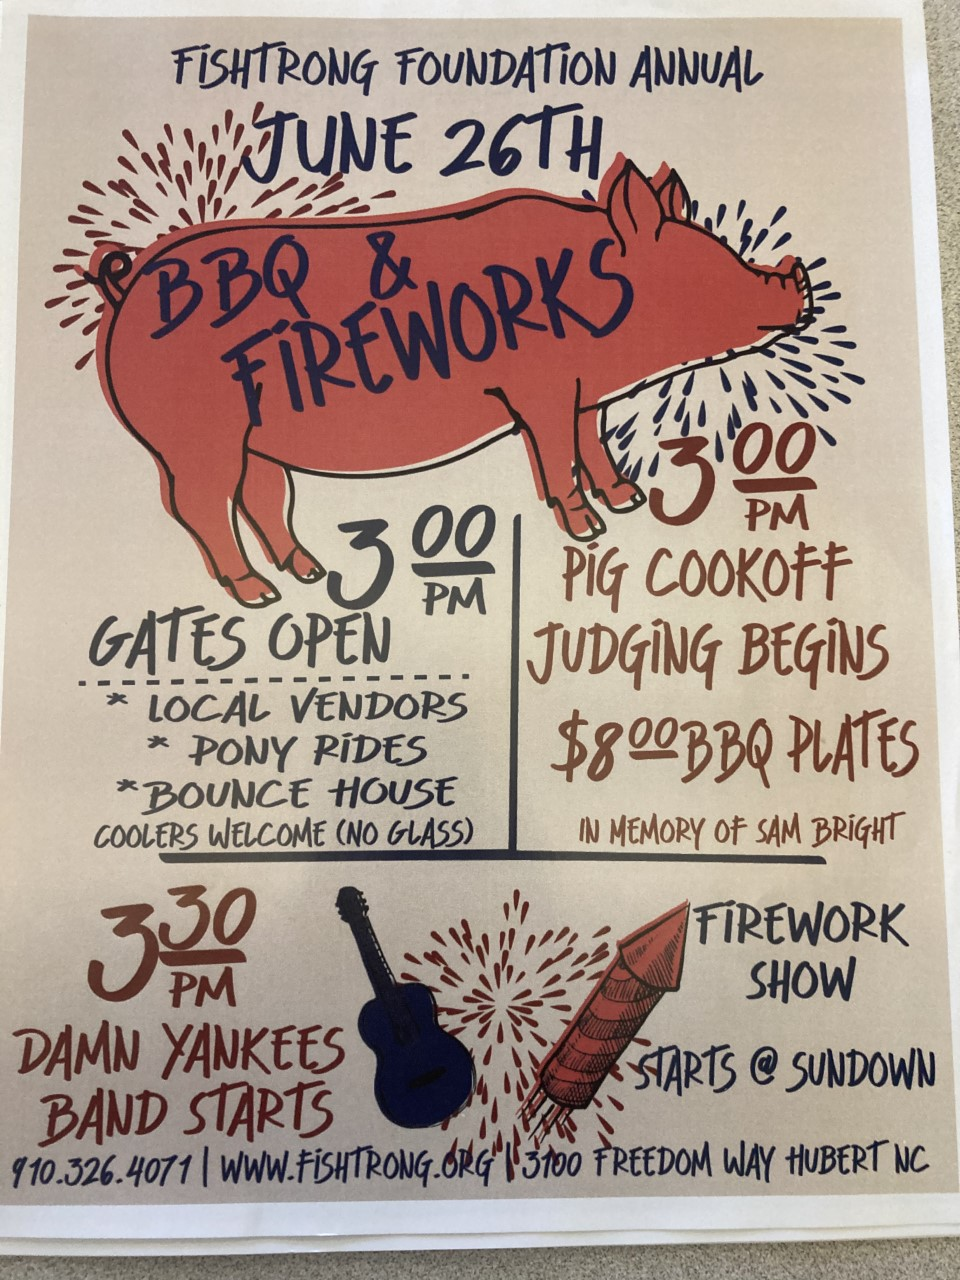 2nd Annual BBQ Cook-Off/Fireworks: Fishstrong Foundation